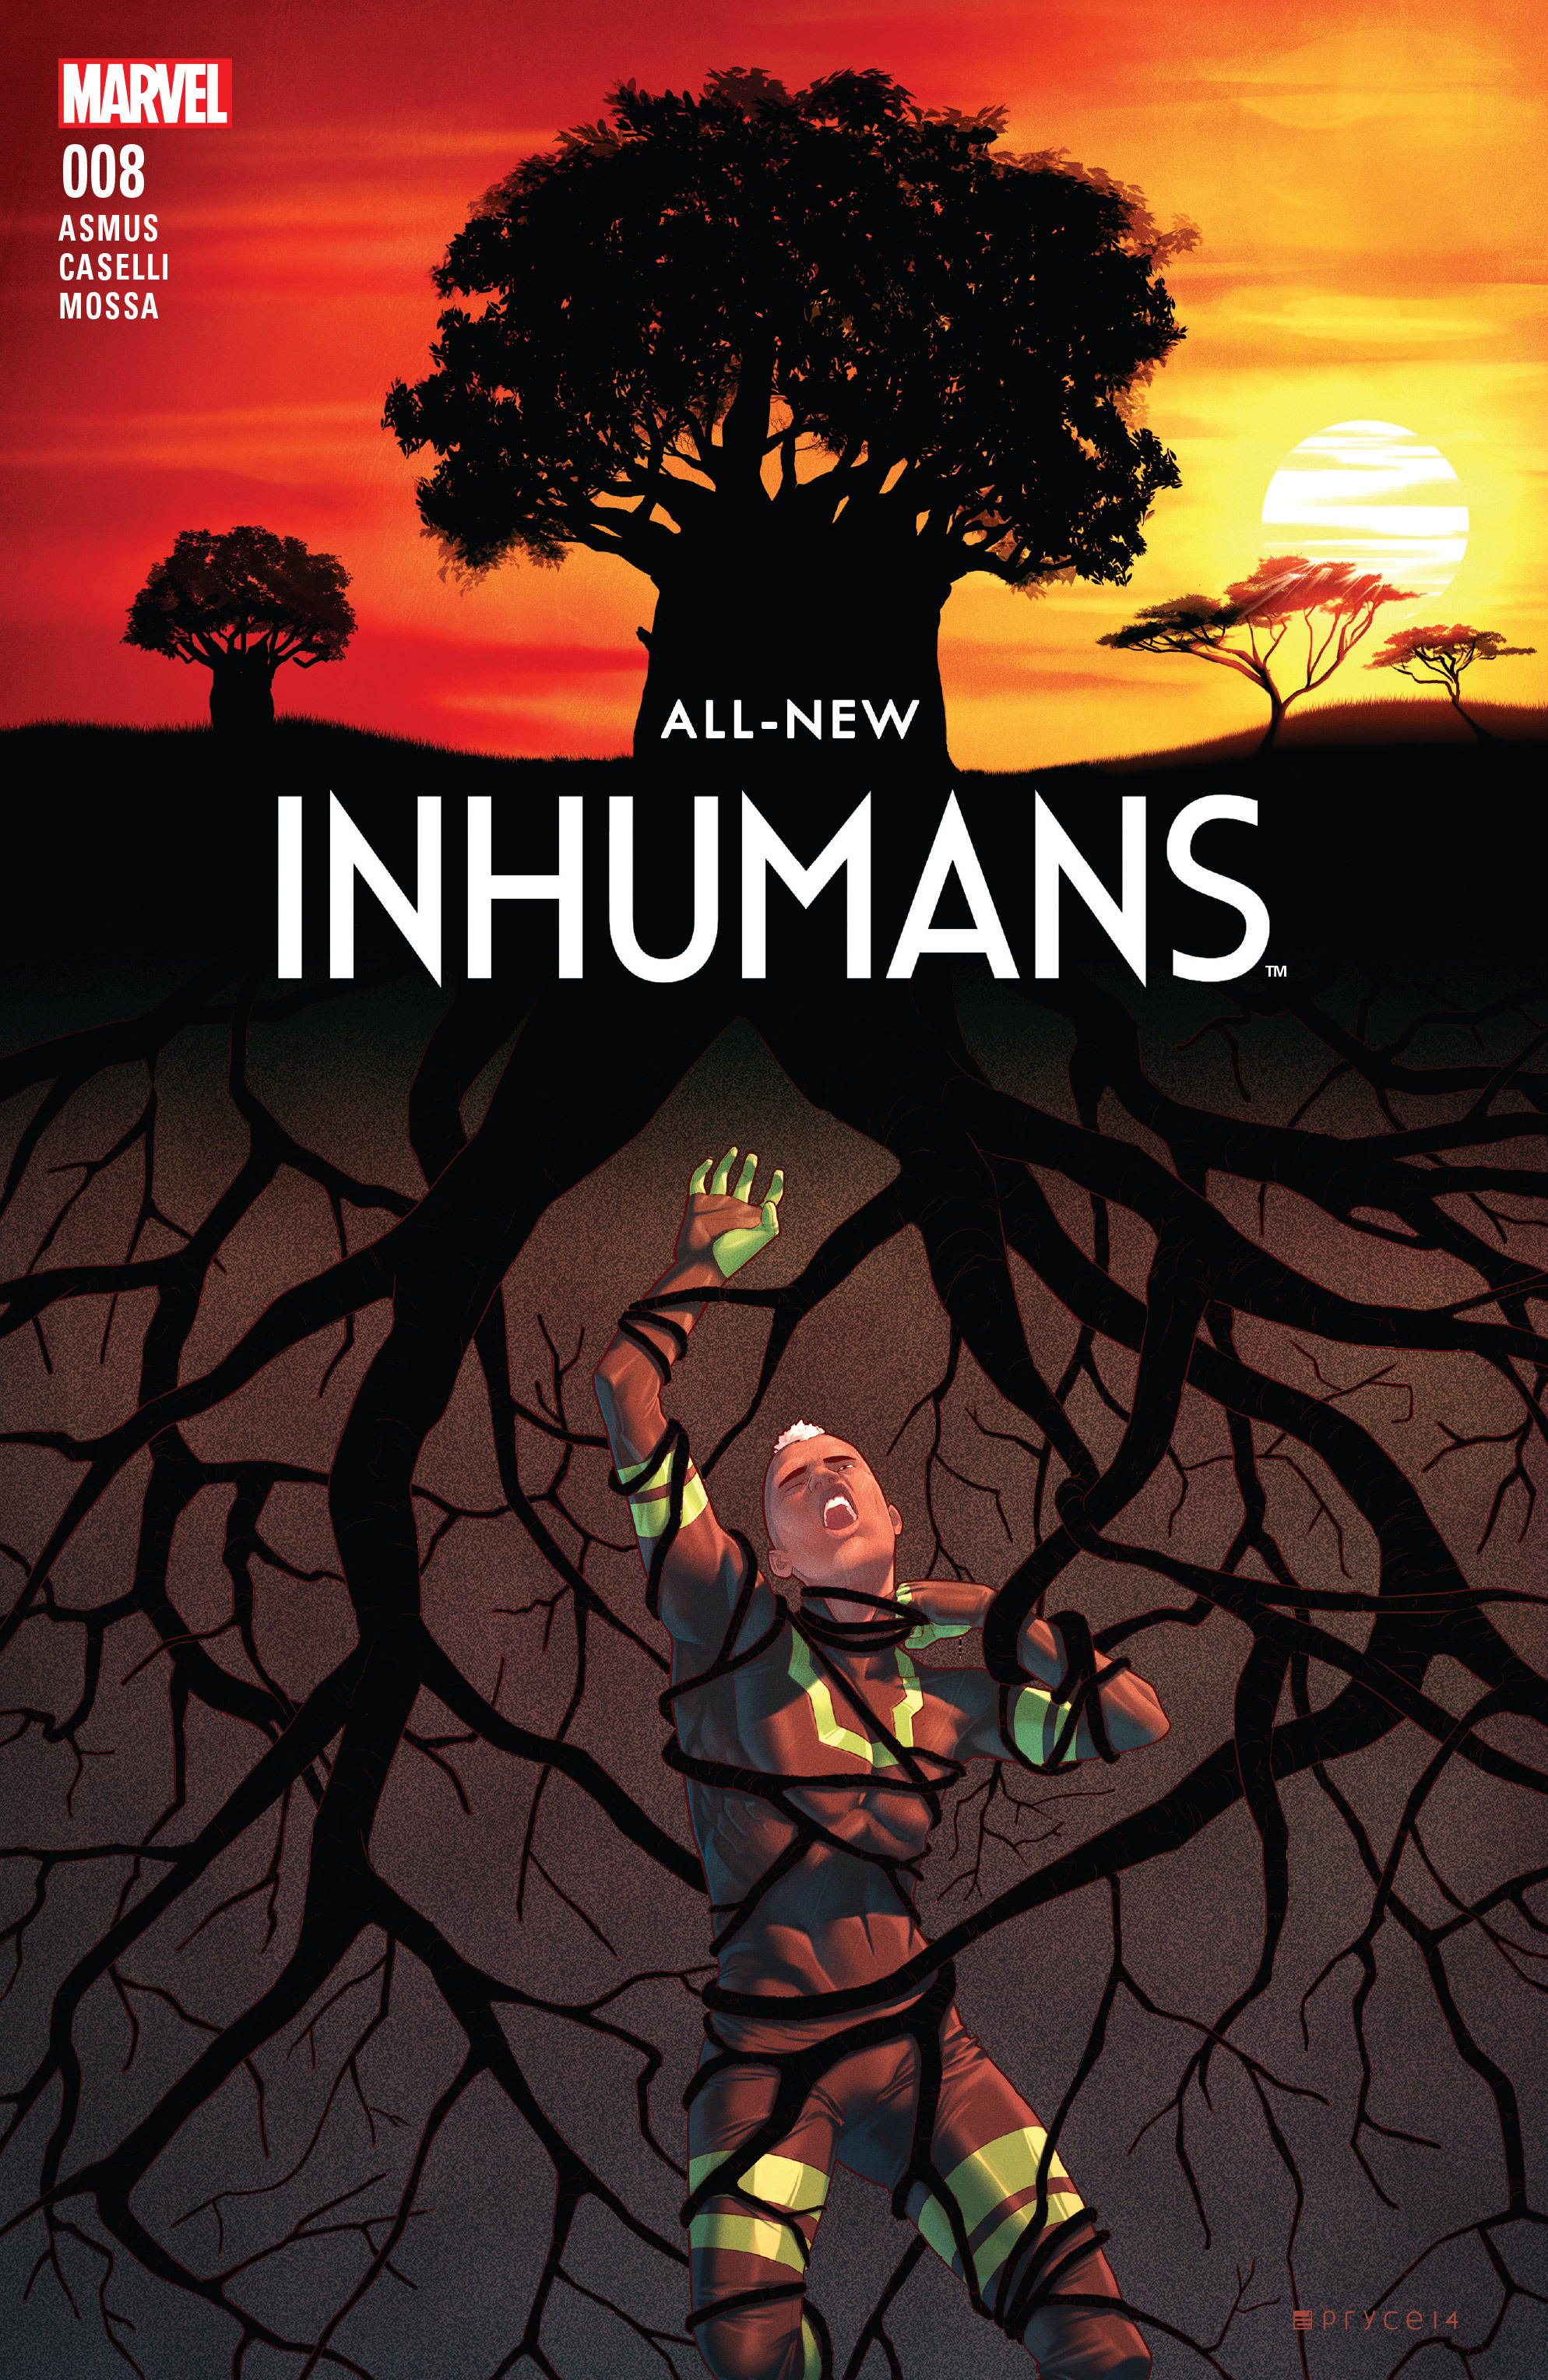 Read online All-New Inhumans comic -  Issue #8 - 1